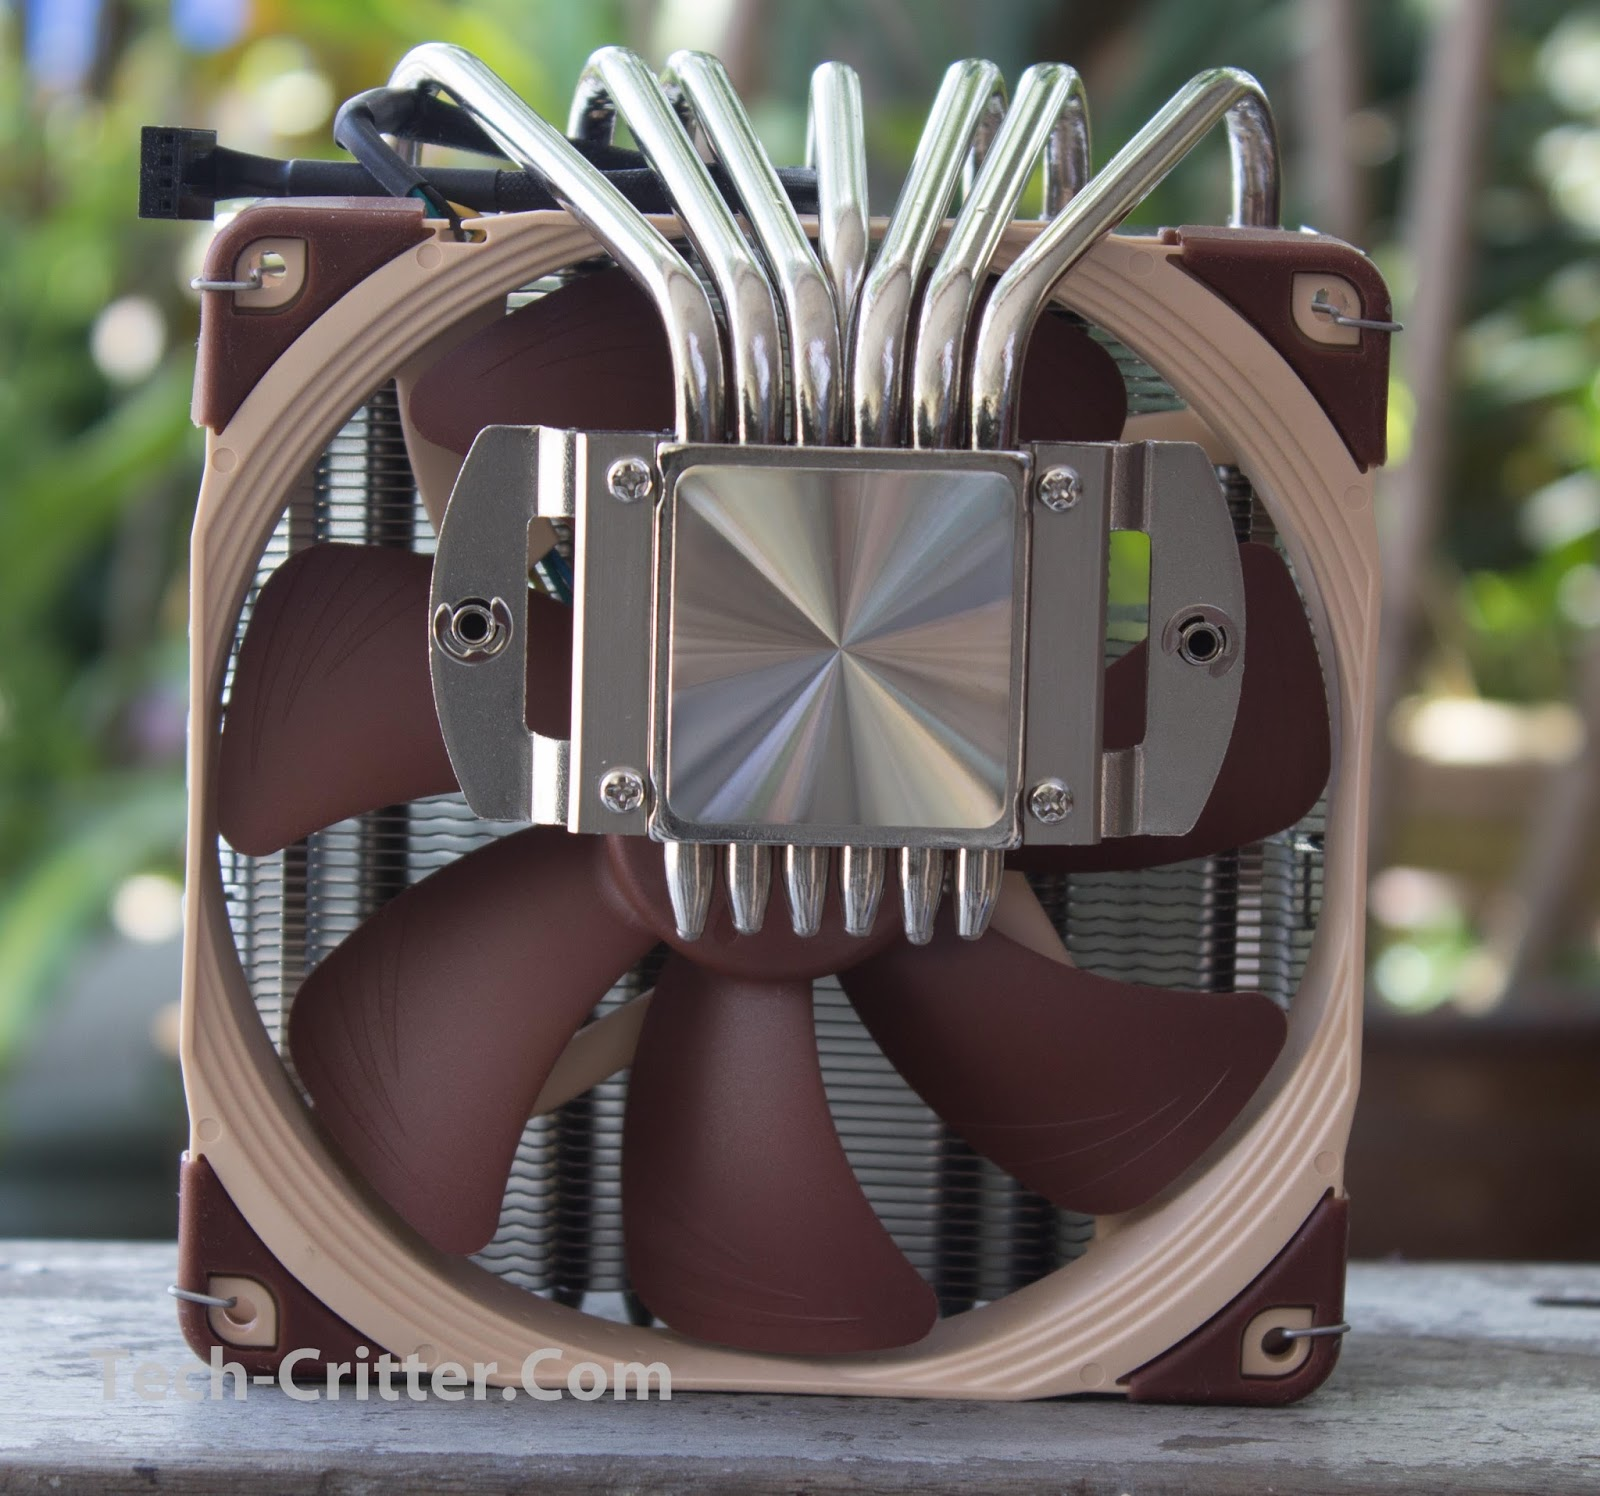 Unboxing & Review: Noctua NH-C14s 13